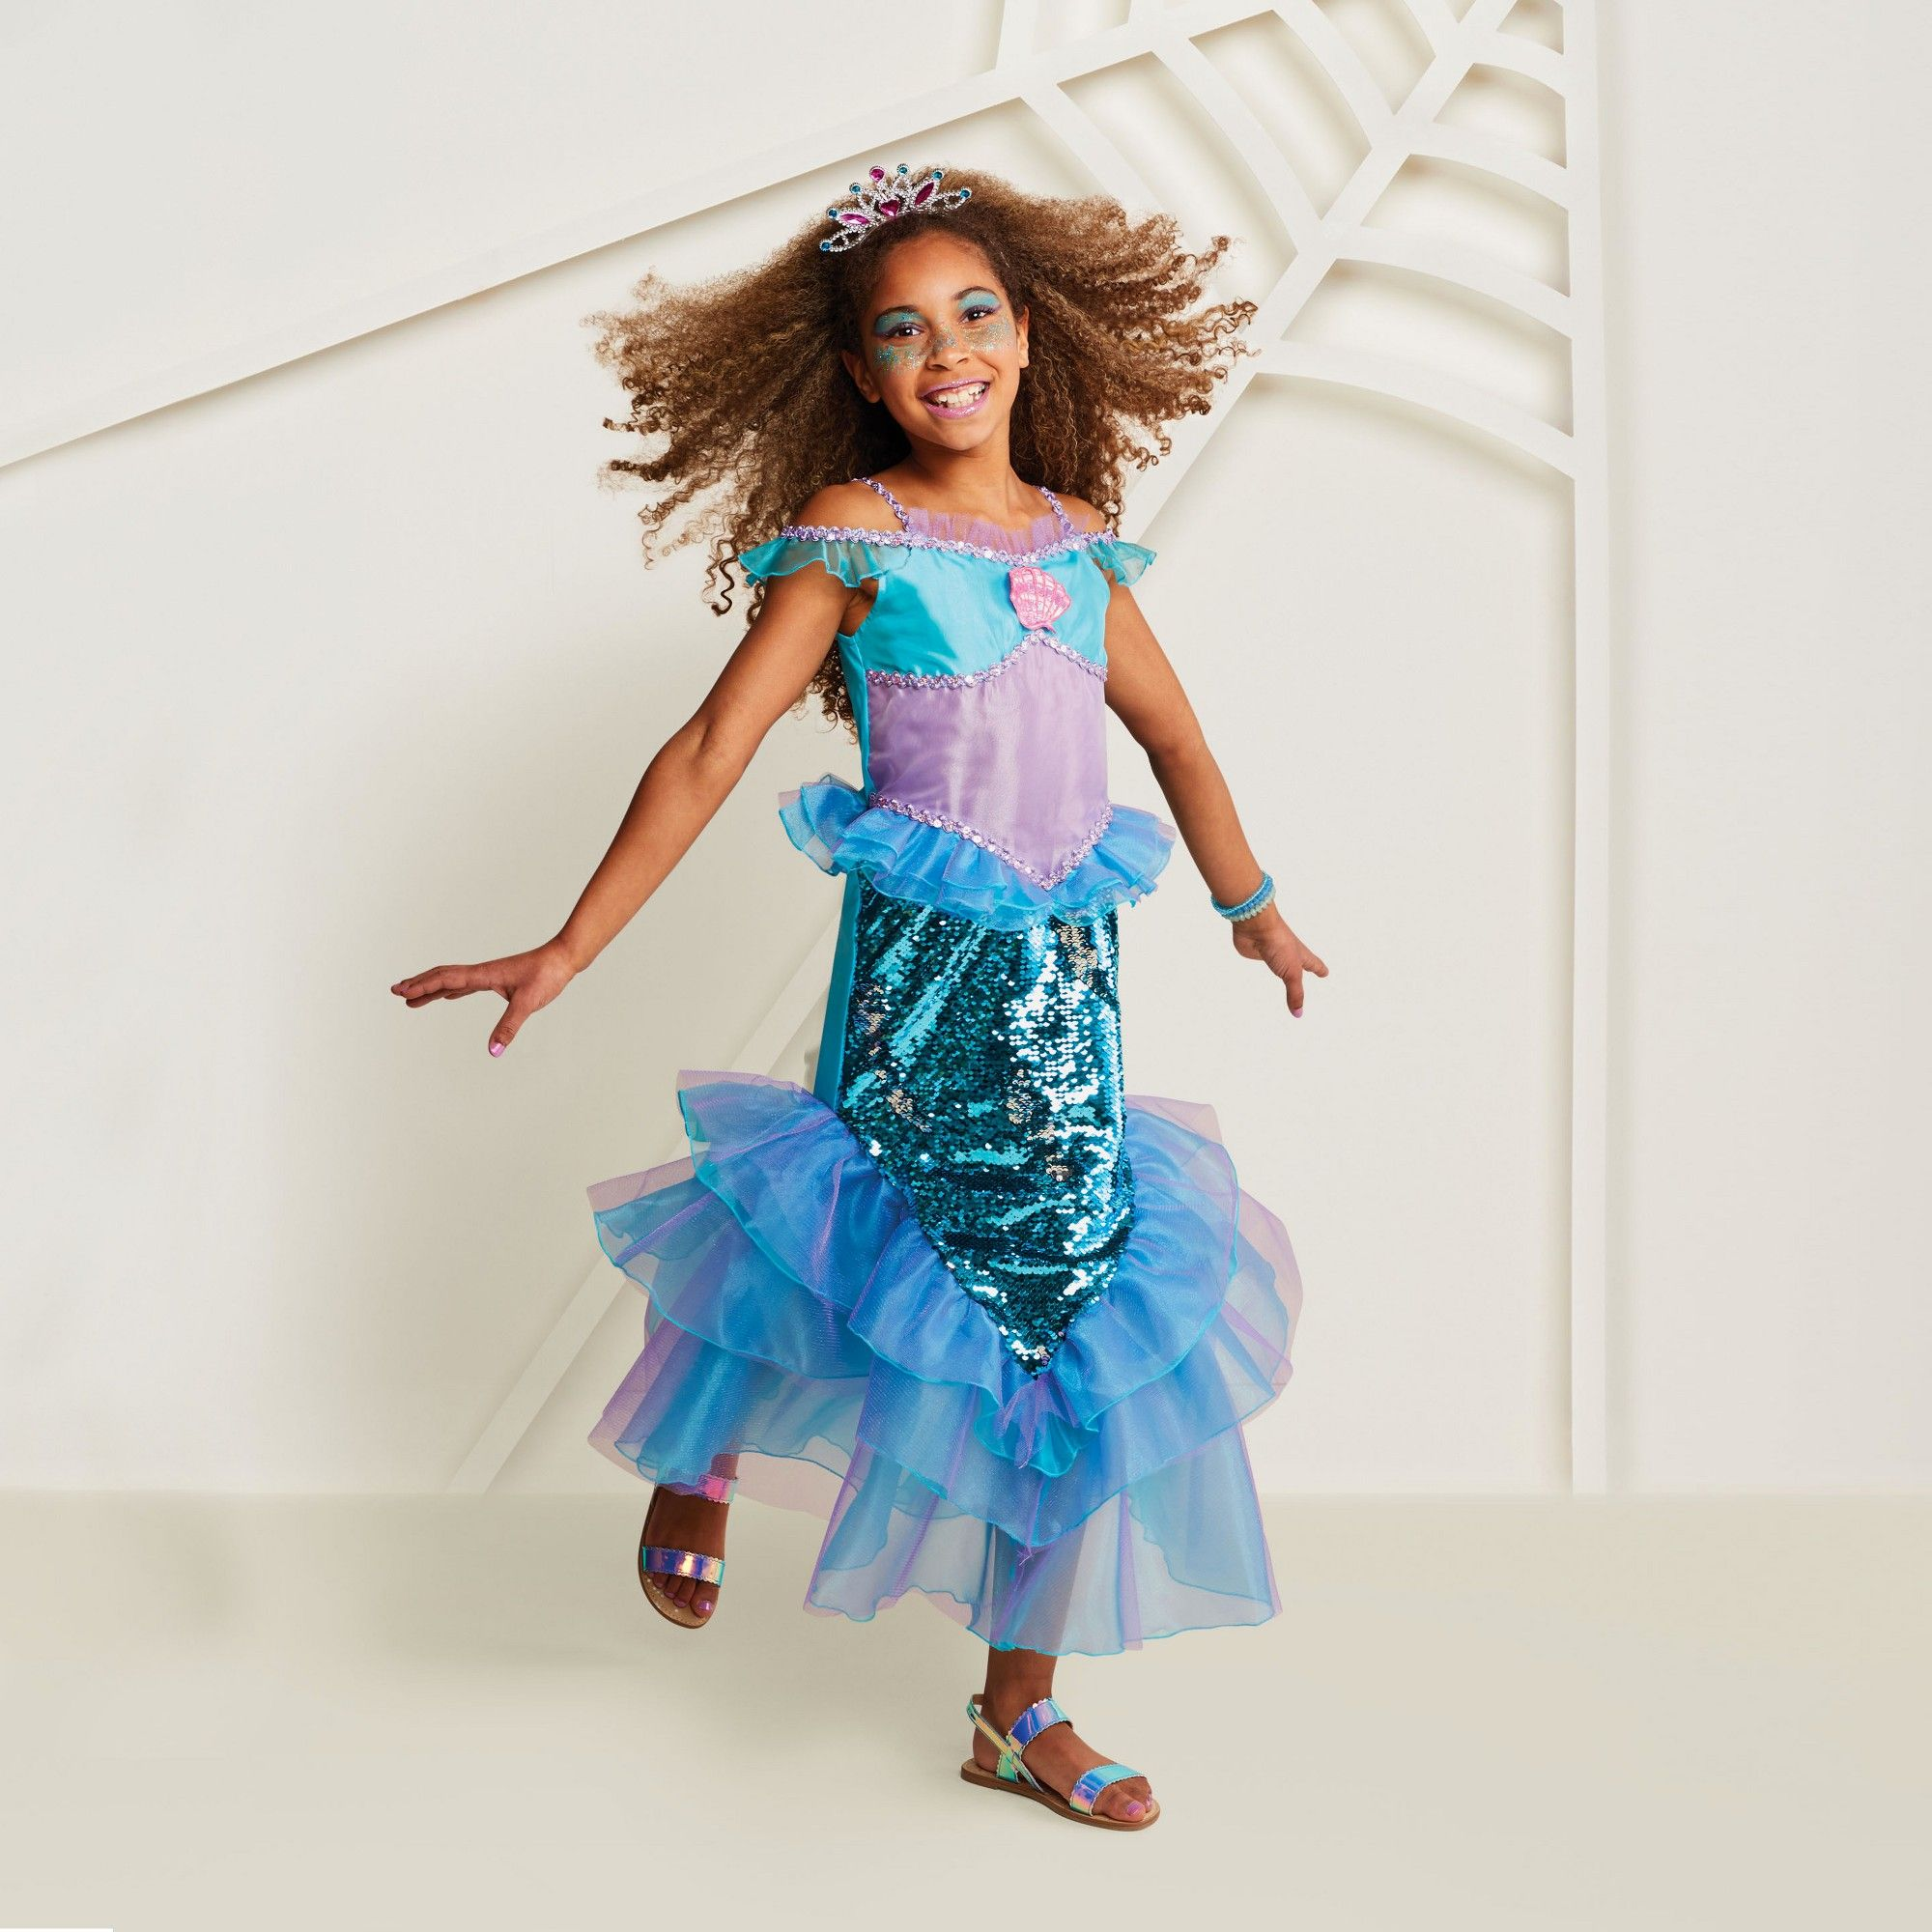 Girls' Deluxe 2sided Sequin Mermaid Halloween Costume L